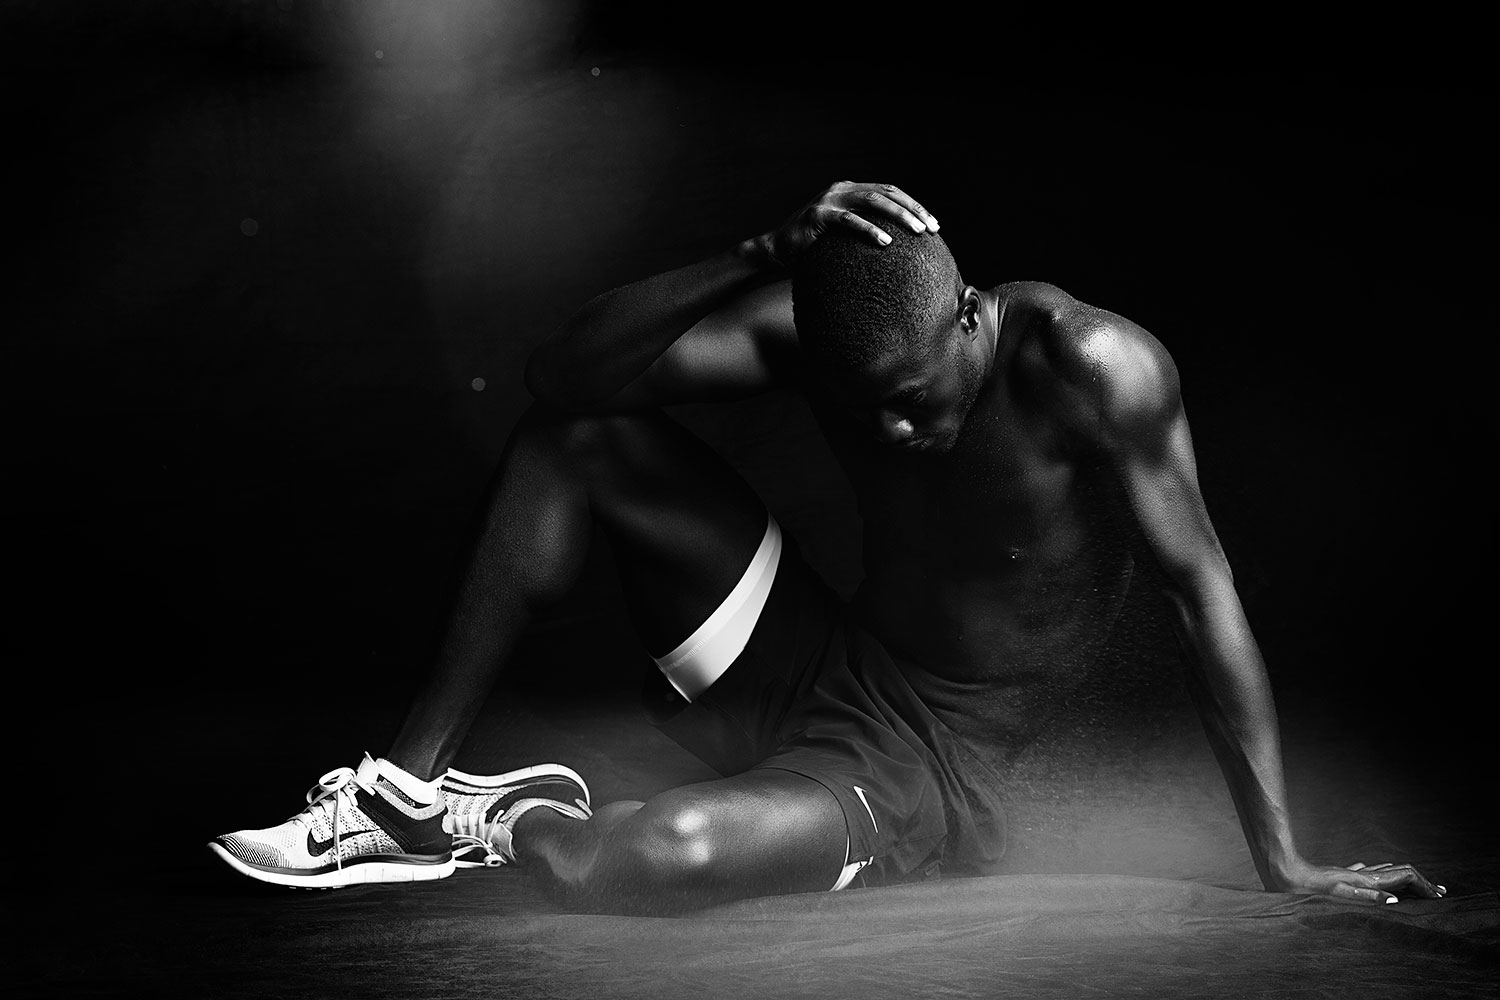 Nike Basketball Campaign Shot by River Jordan